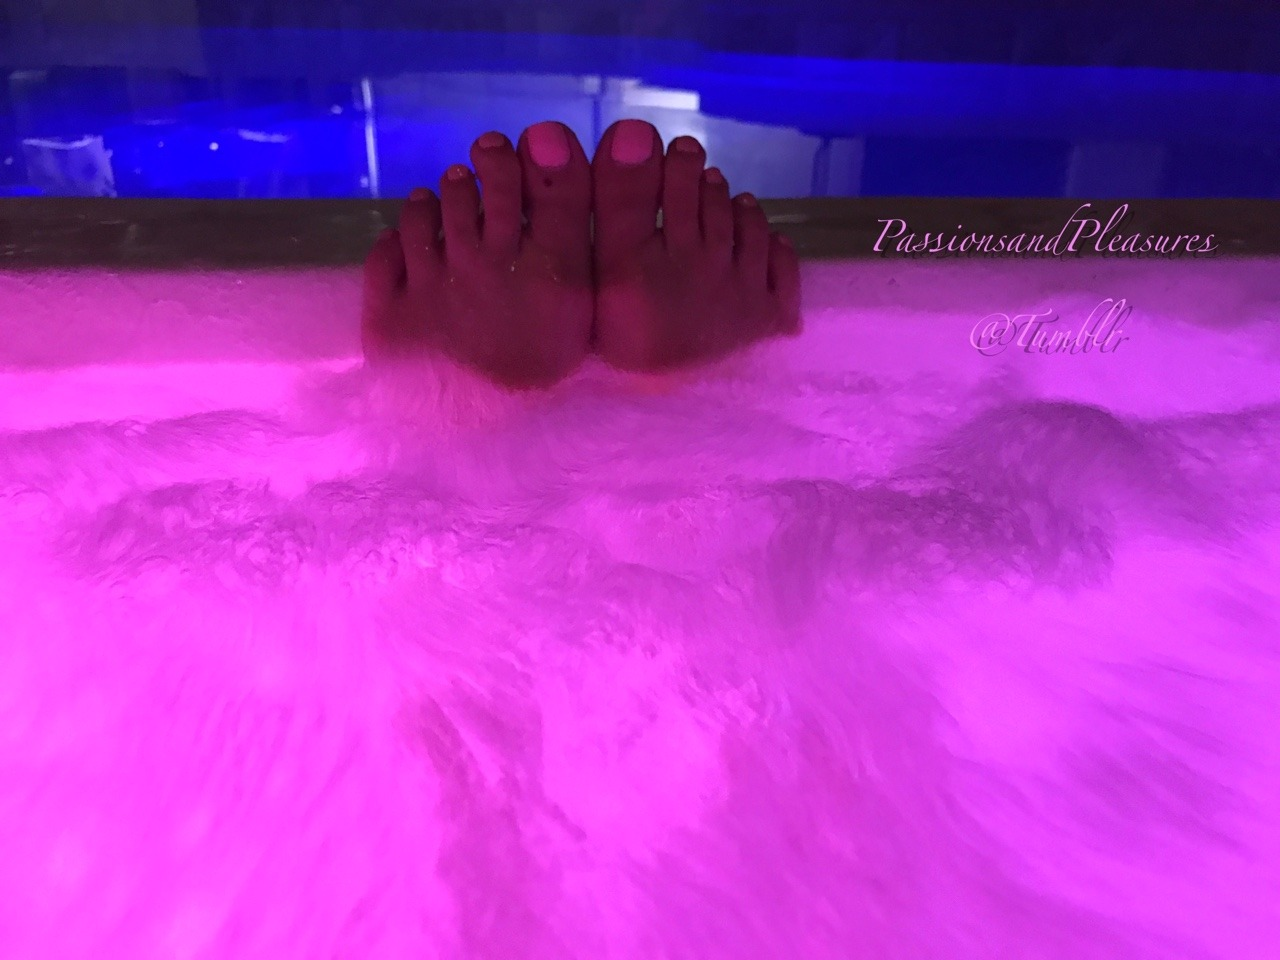 salntandslnner:https://passionsandpleasures.tumblr.comBathing in pink 😘 ~ P&PClassy, elegant, suggerent and sexy submission from @passionsandpleasures Thanks babe for joining us today for Flats Friday. Now let me join you there! Love having you here! 😘👣👣😘Ahhh YES. We're due for another one of these weekend getaways. Had so much fun the last time. Thanks @salntandslnner for posting our submission 😘 Use the #'s below to see more 😉